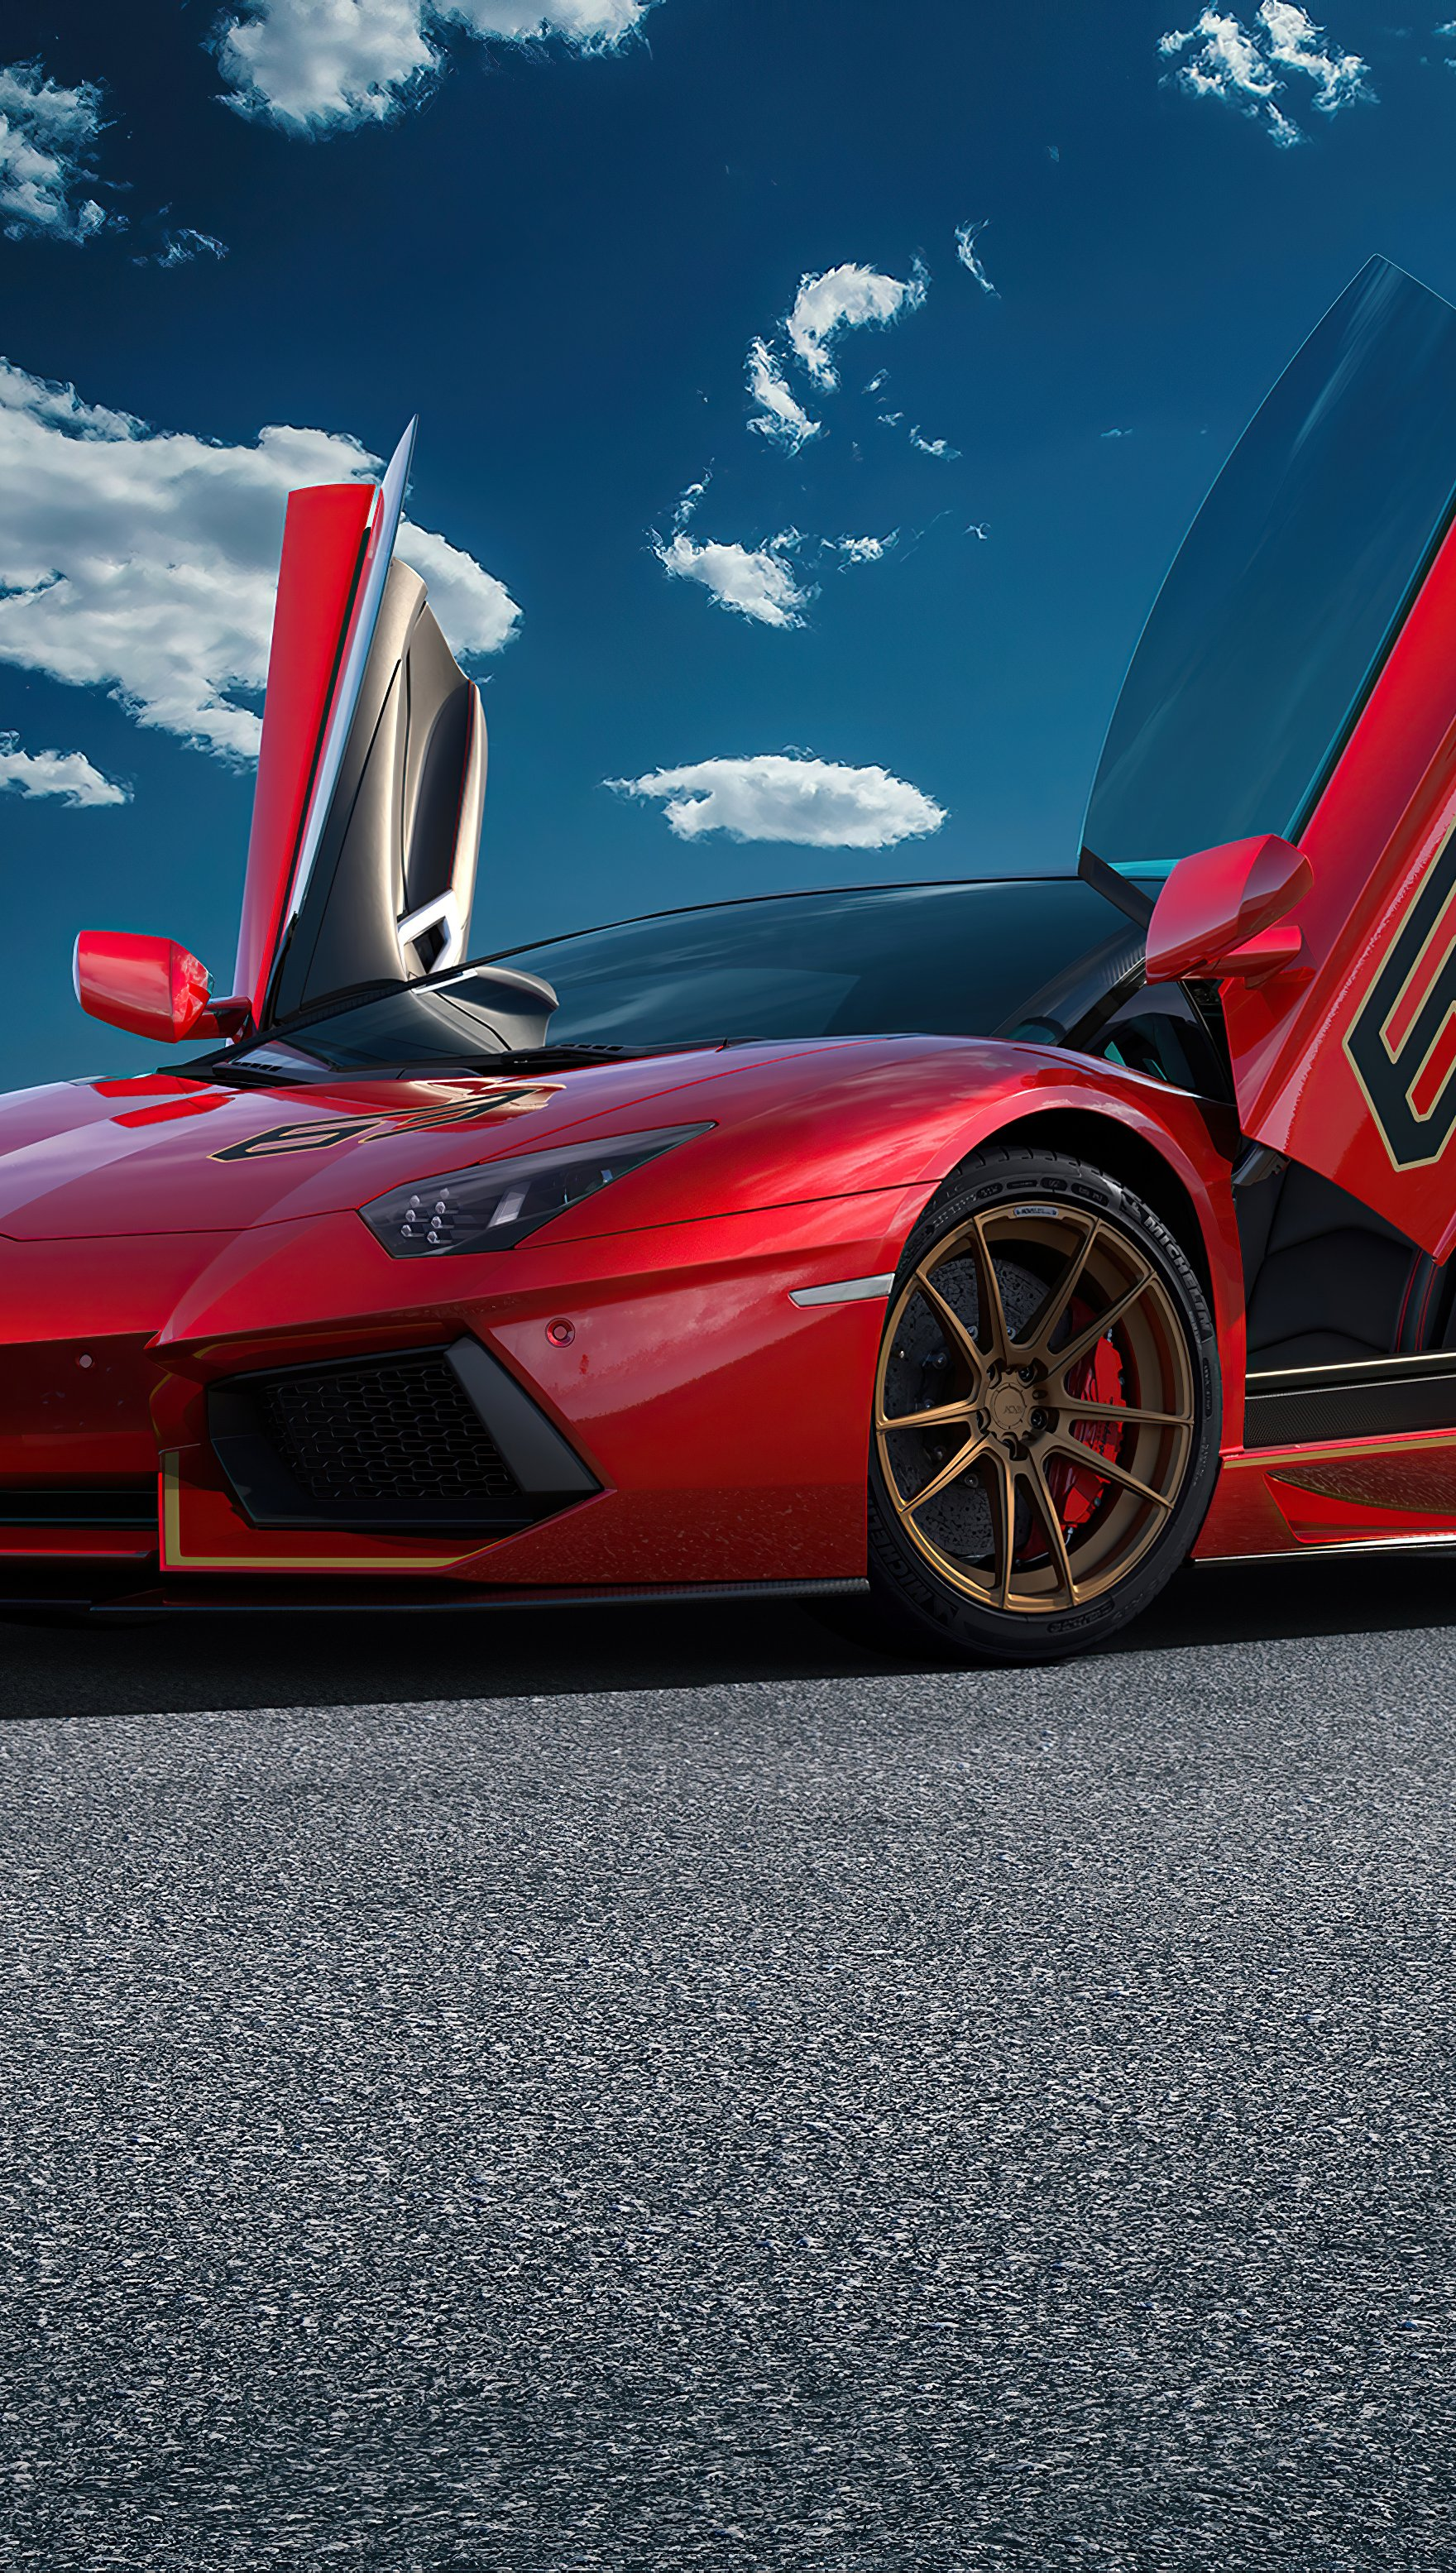 Wallpaper Lamborghini Aventador SVJ Red Vertical